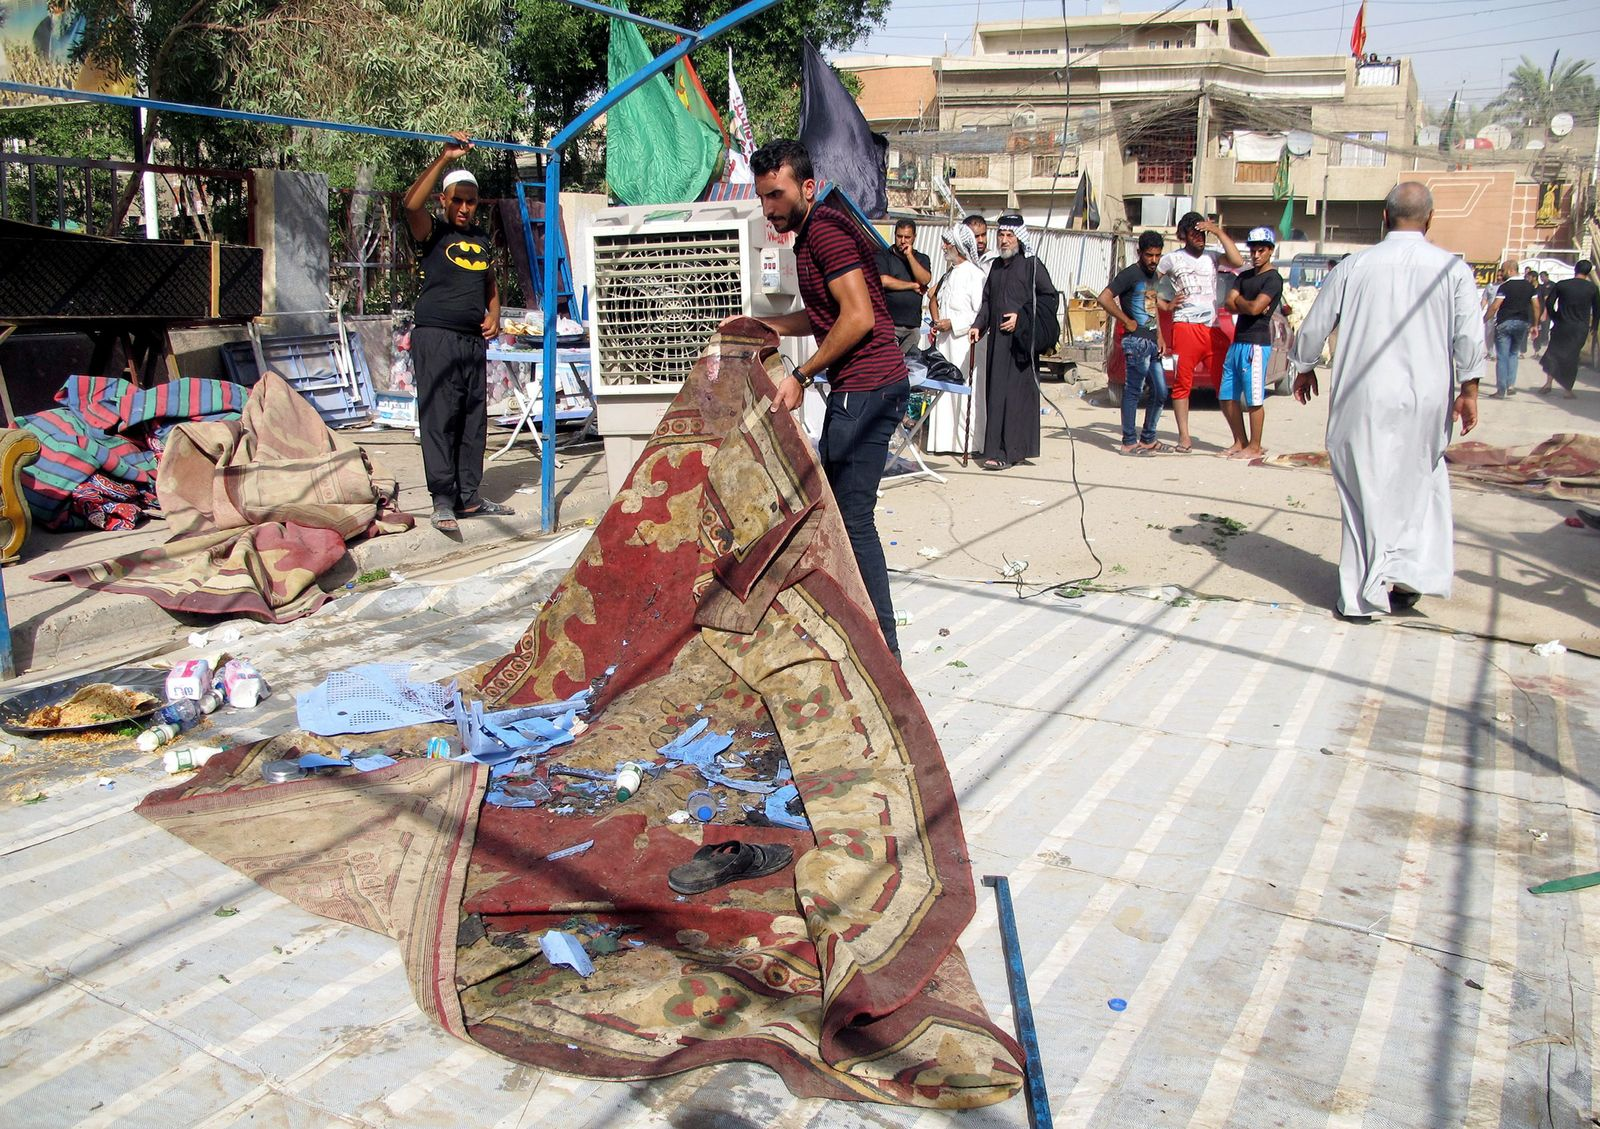 15 people were killed in a suicide bomber attack in northern Bagh